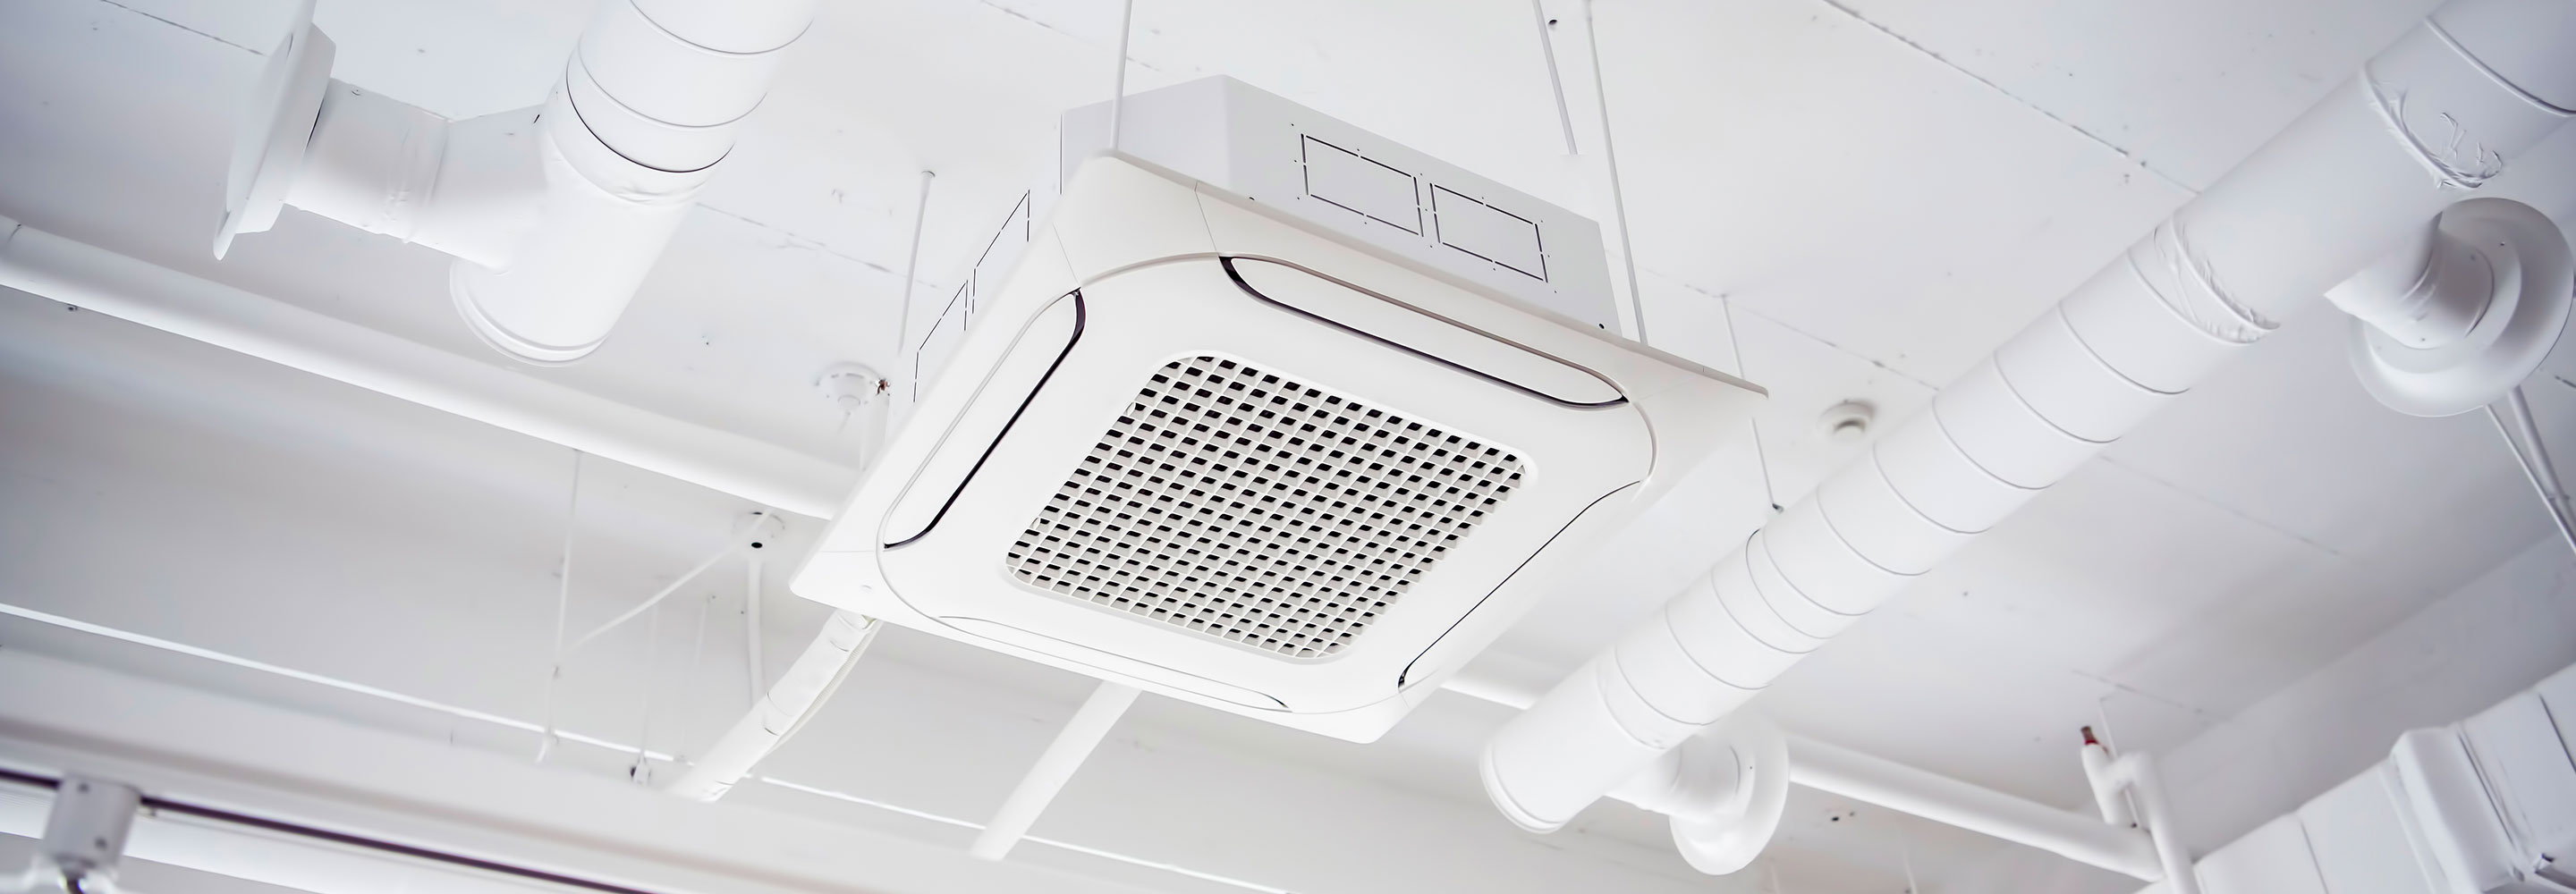 HVAC vent in the ceiling of an office